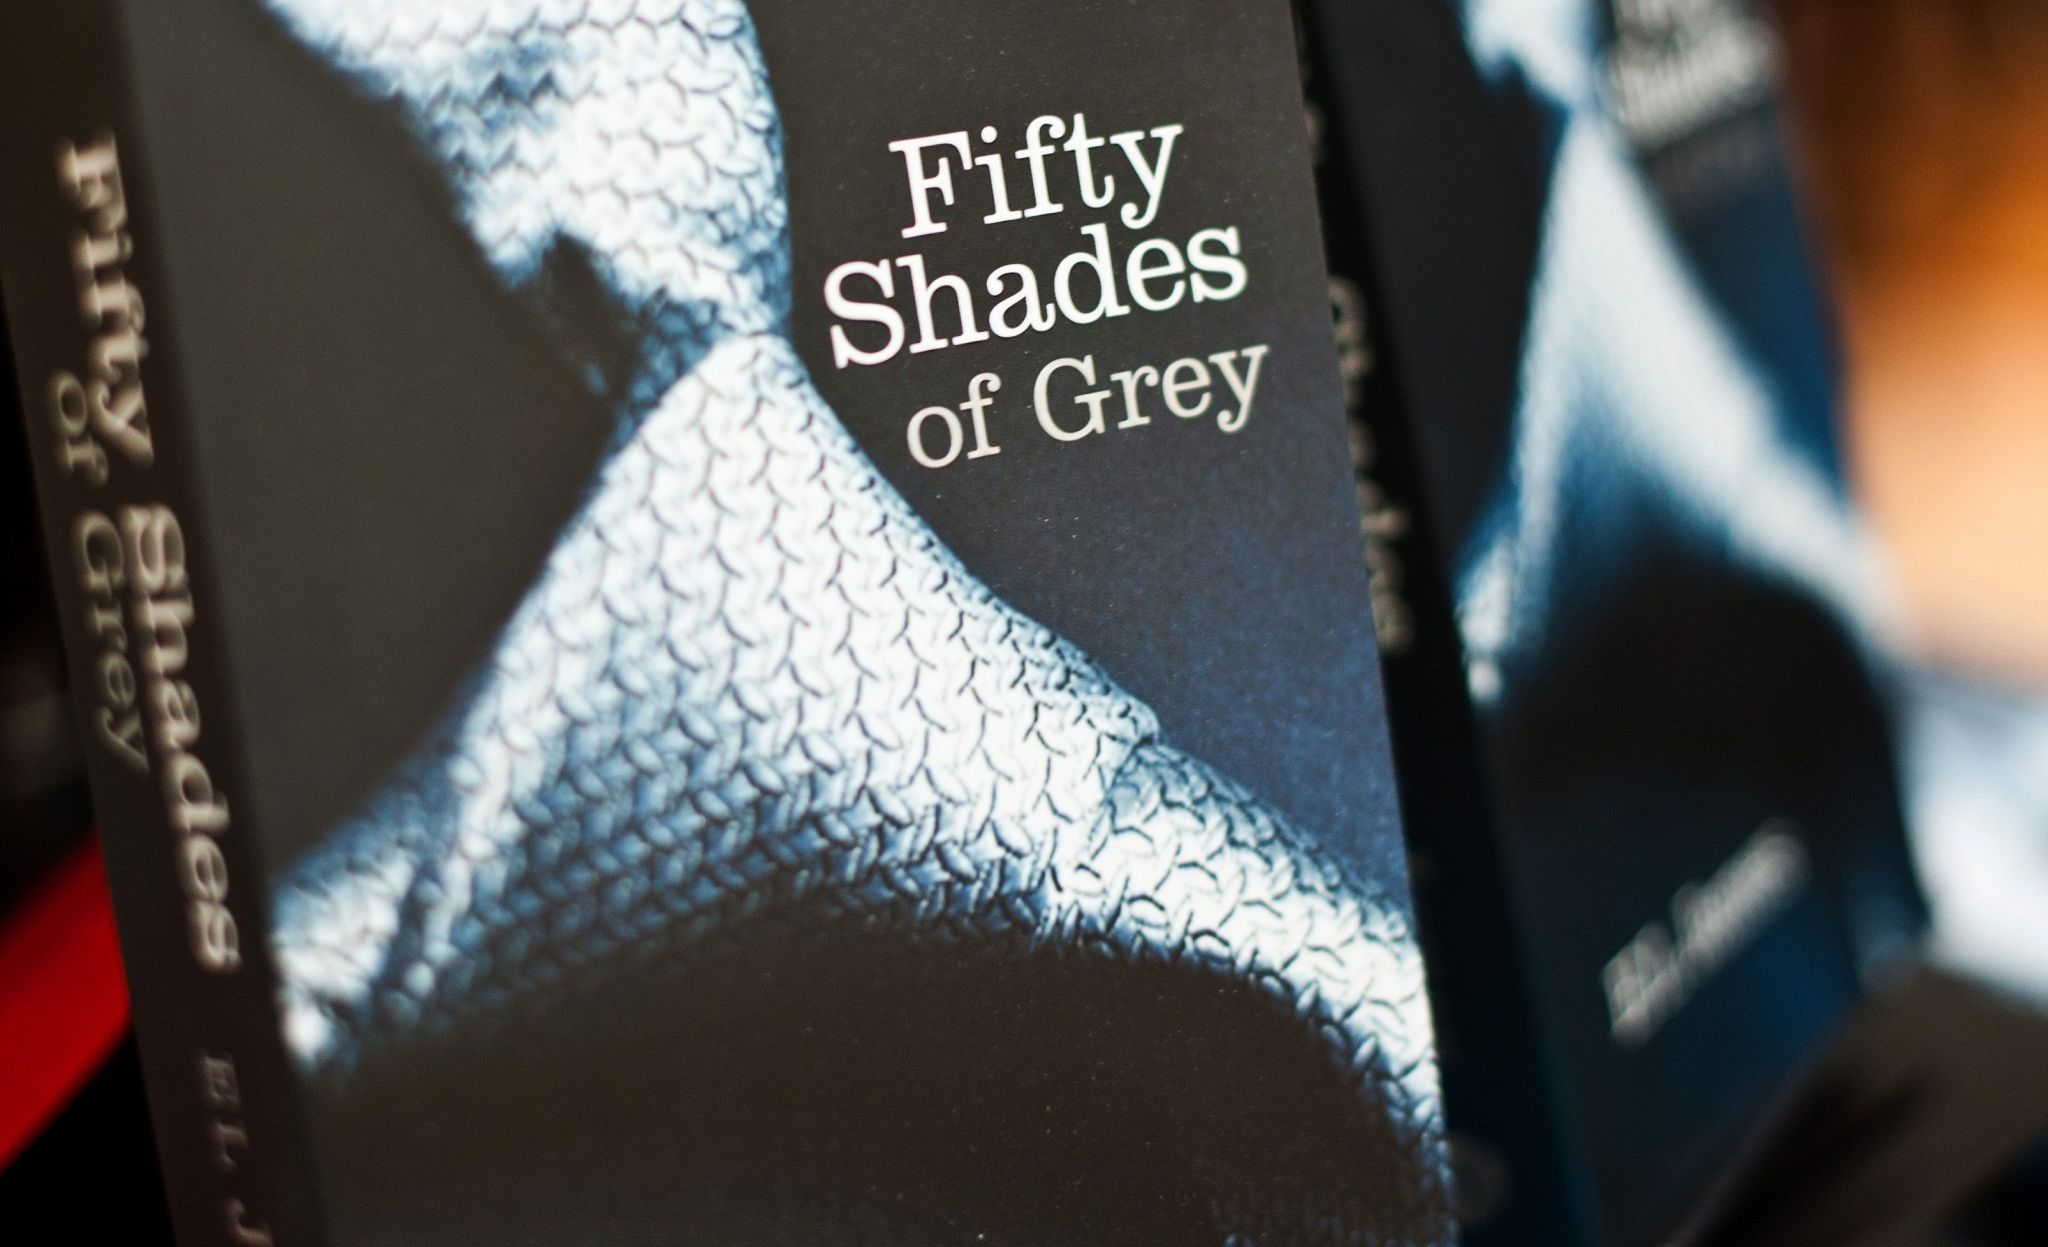 Judith Watts, senior lecturer of publishing at Kingston University, reveals how Fifty Shades of Grey has lost some of its allure